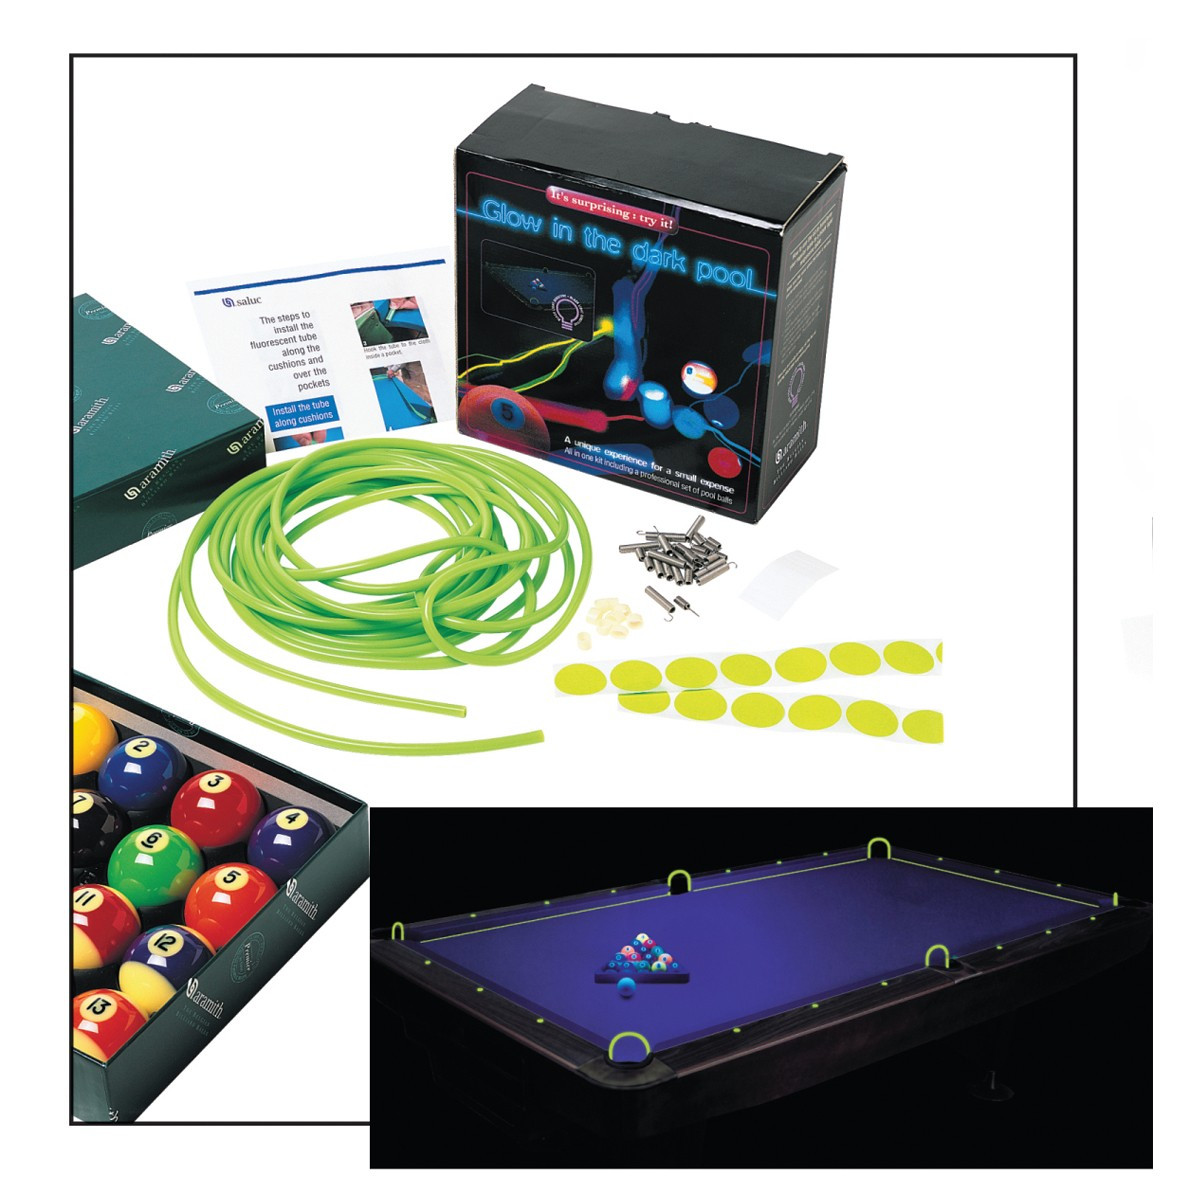 Superb Aramith Glow In The Dark Pool Table Kit Home Interior And Landscaping Ponolsignezvosmurscom